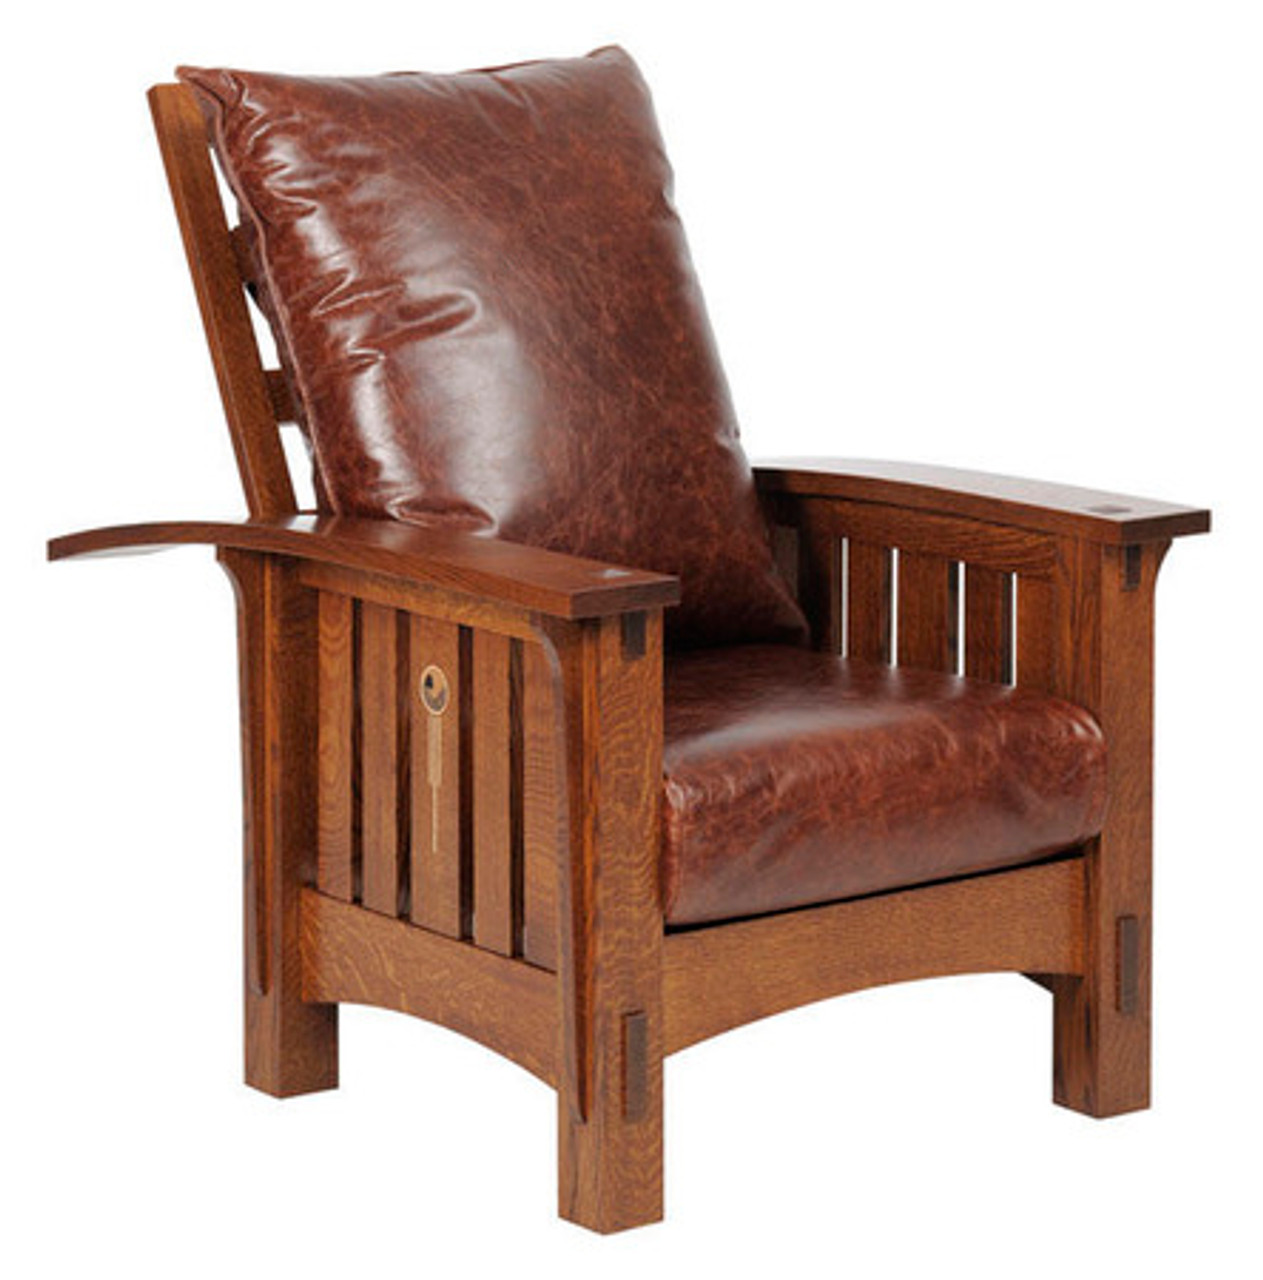 Groovy Craftsman Morris Chair Crw 1403 Alphanode Cool Chair Designs And Ideas Alphanodeonline